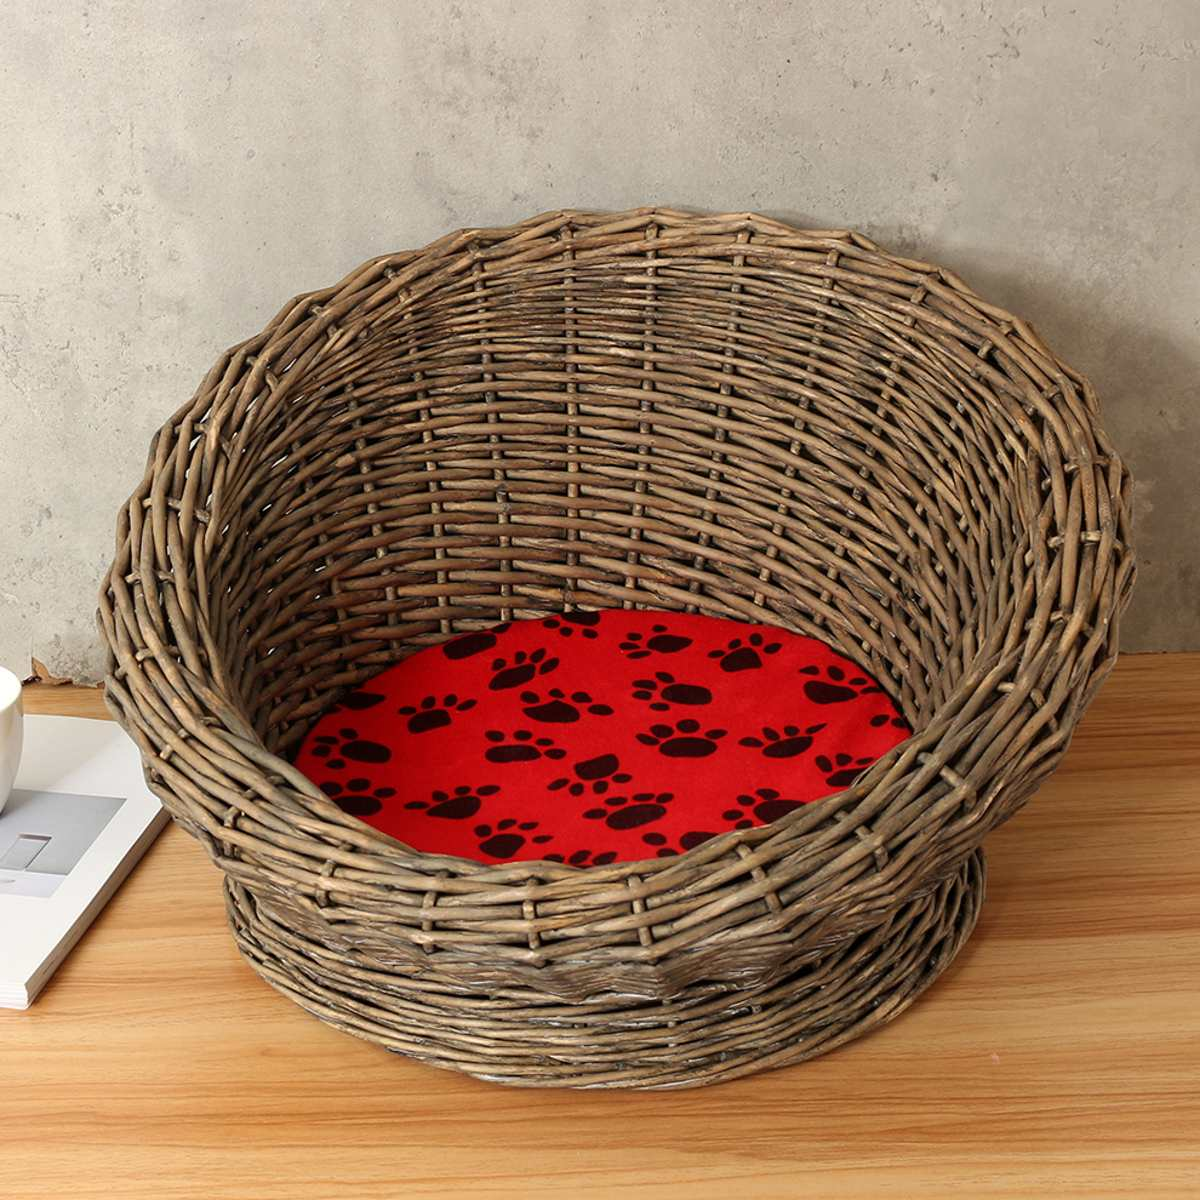 Round Woven Natural Wicker Pet Bed Basket For Cat Kitten